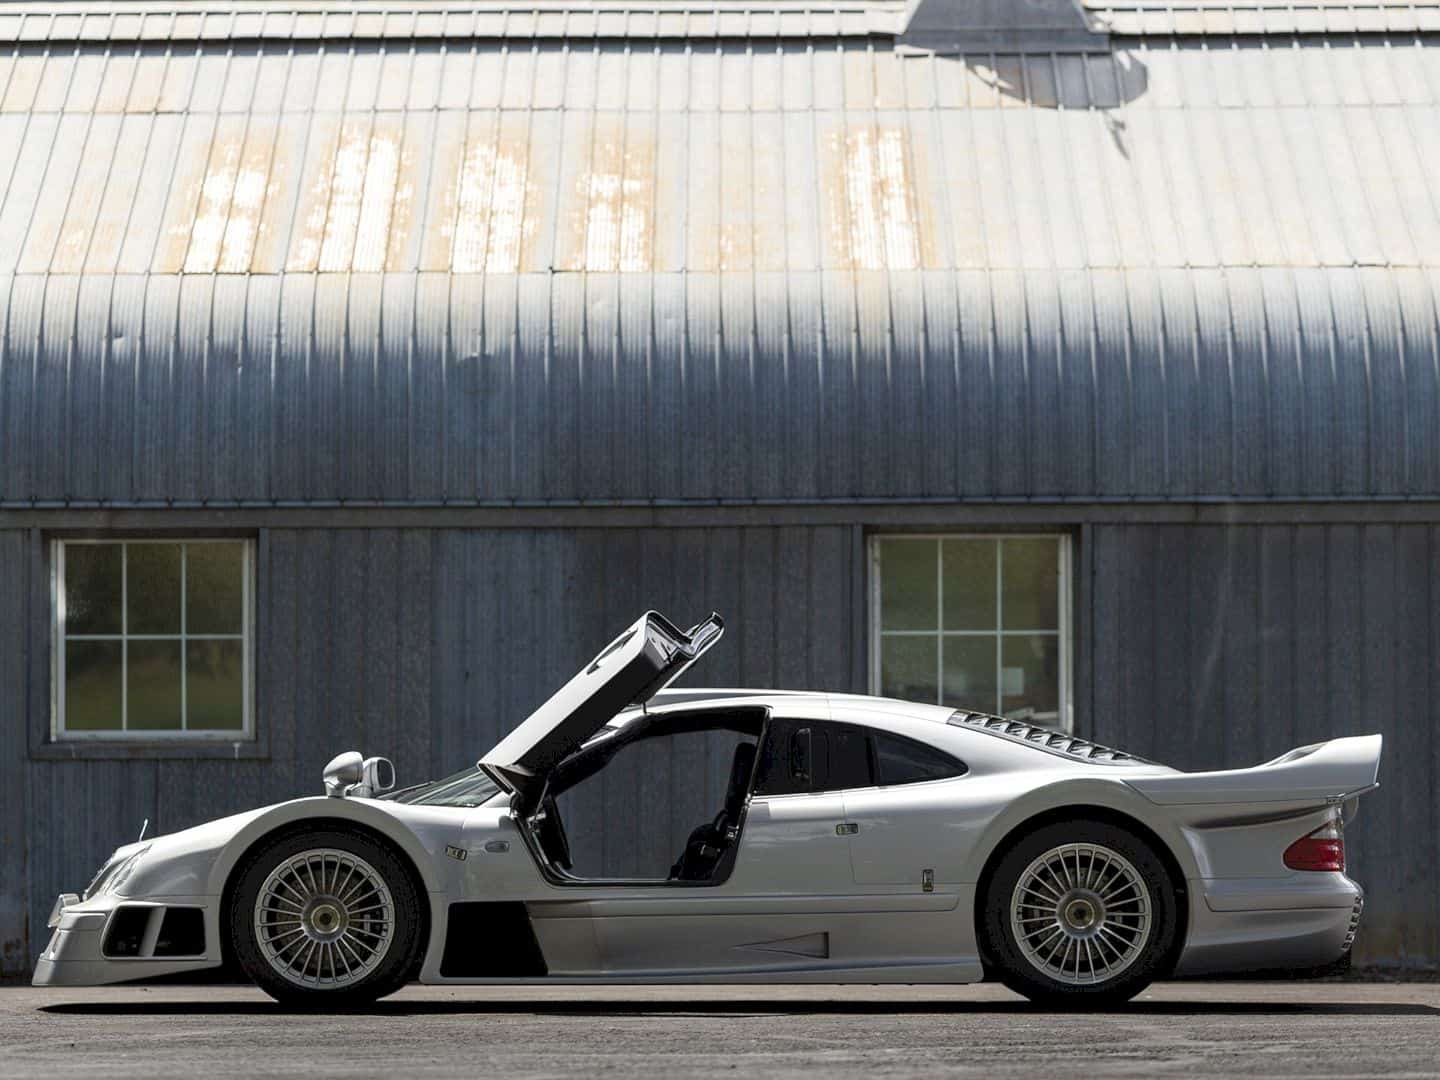 1998 Mercedes-Benz AMG CLK GTR: The Limited Edition Award Winning Car